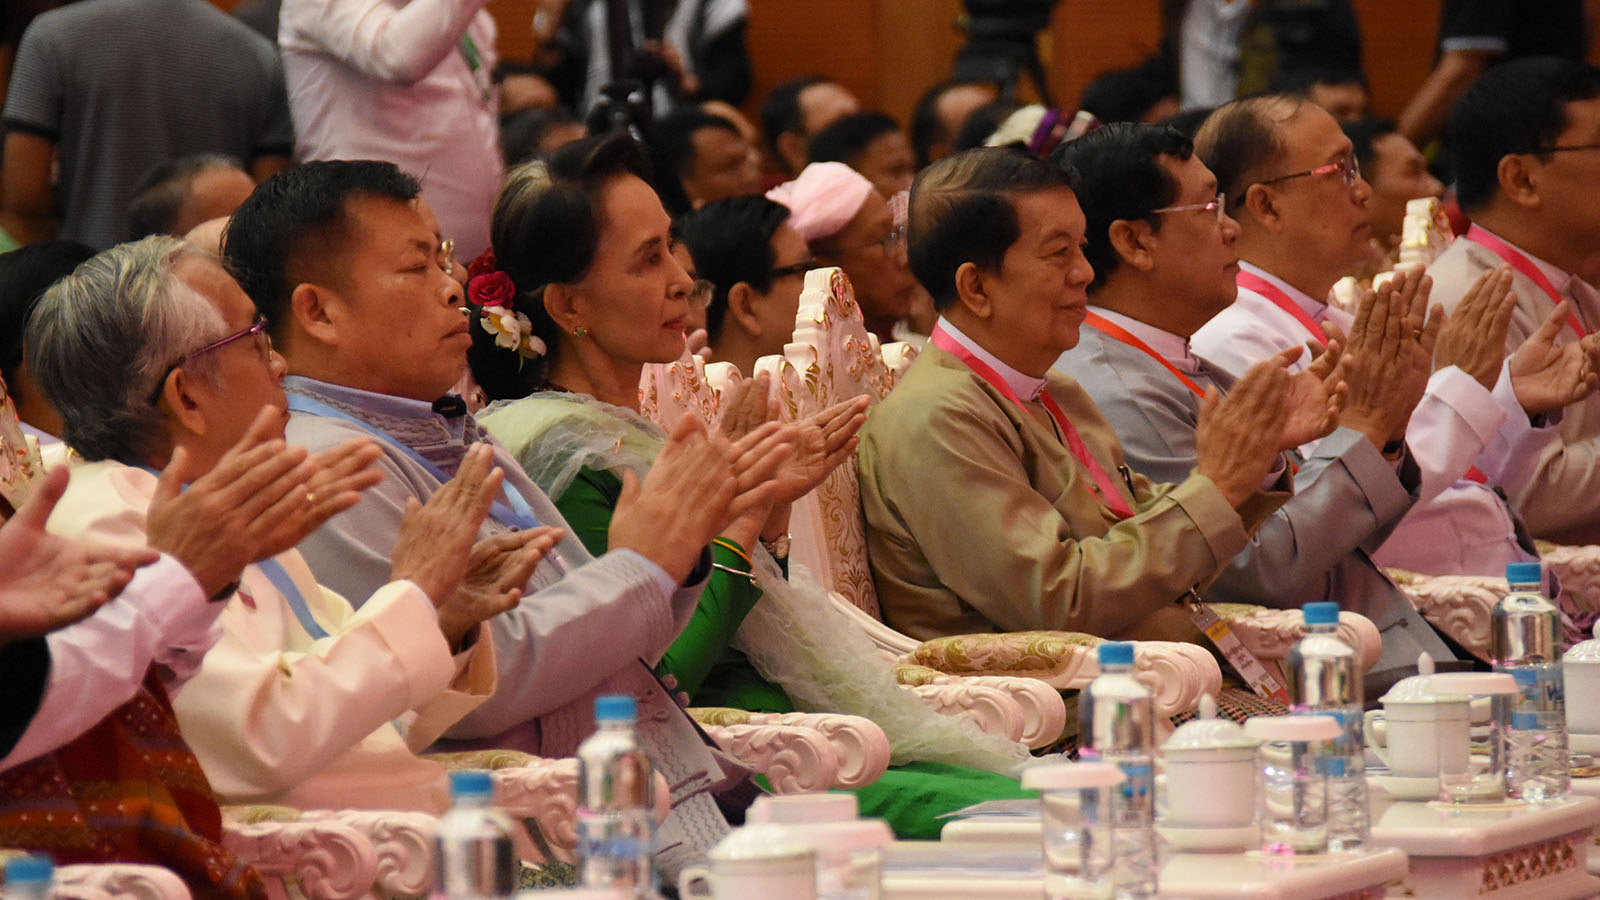 State Counsellor Daw Aung San Suu Kyi, third from left, attends the closing ceremony of the Third Session of the Union Peace Conference-21st Century Panglong in Nay Pyi Taw.Photo: MNA